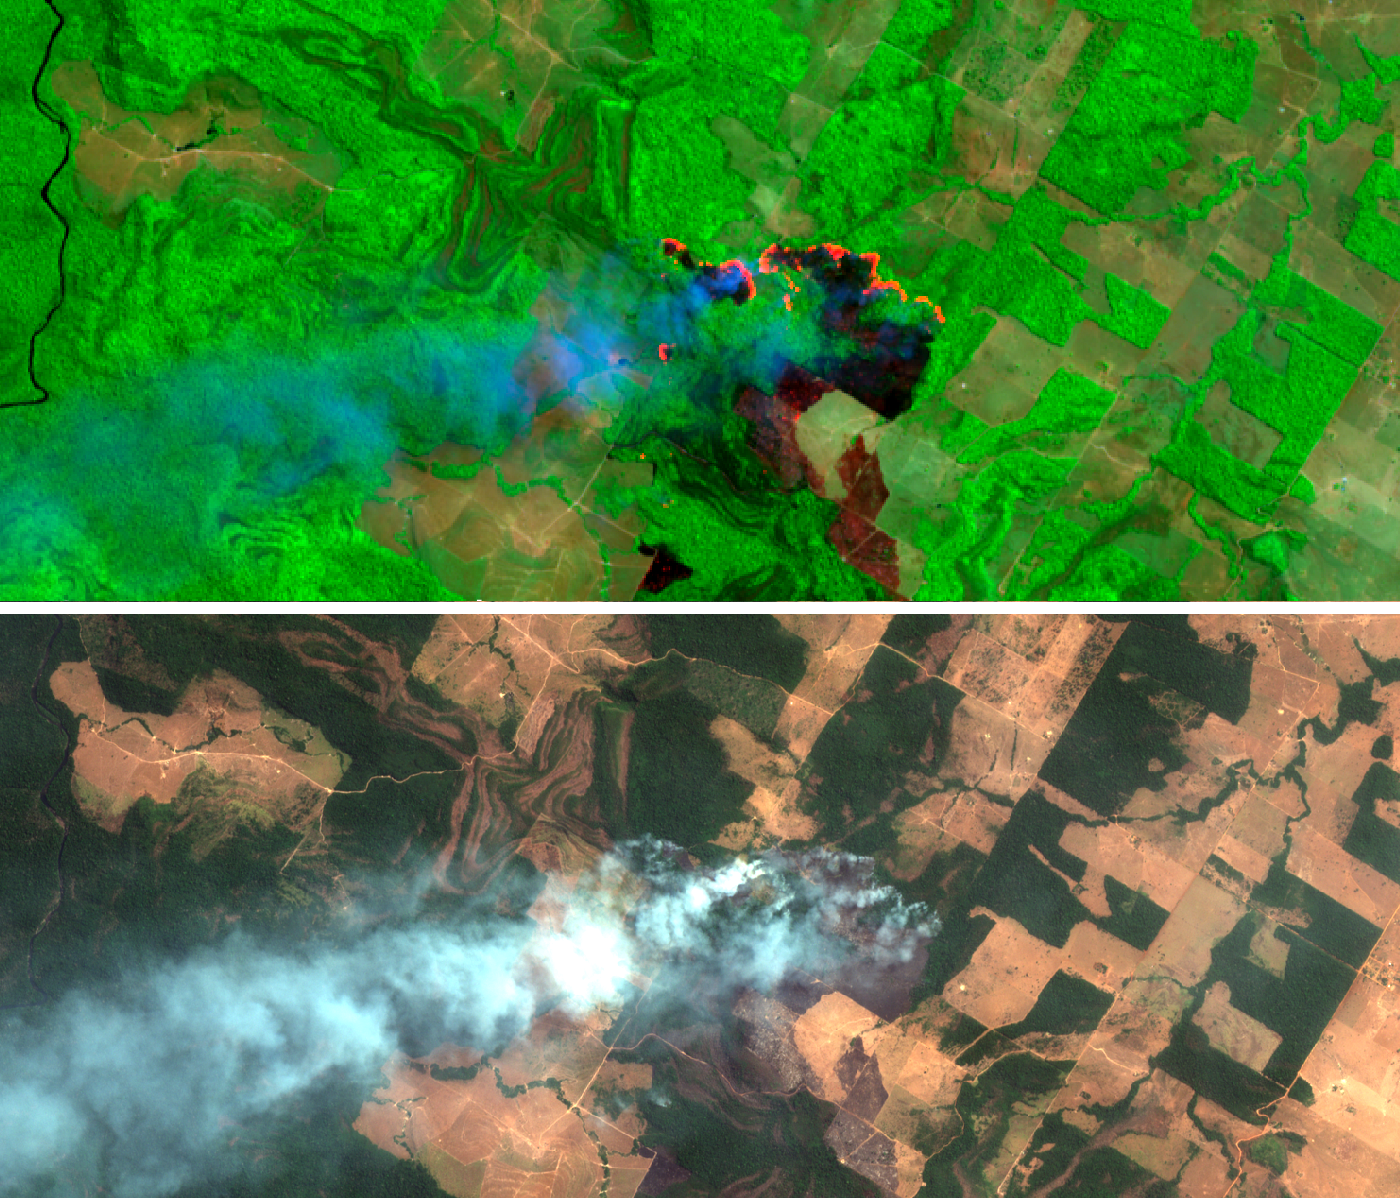 Featured image: The fires in Brazil in satellite imagery: Part 1